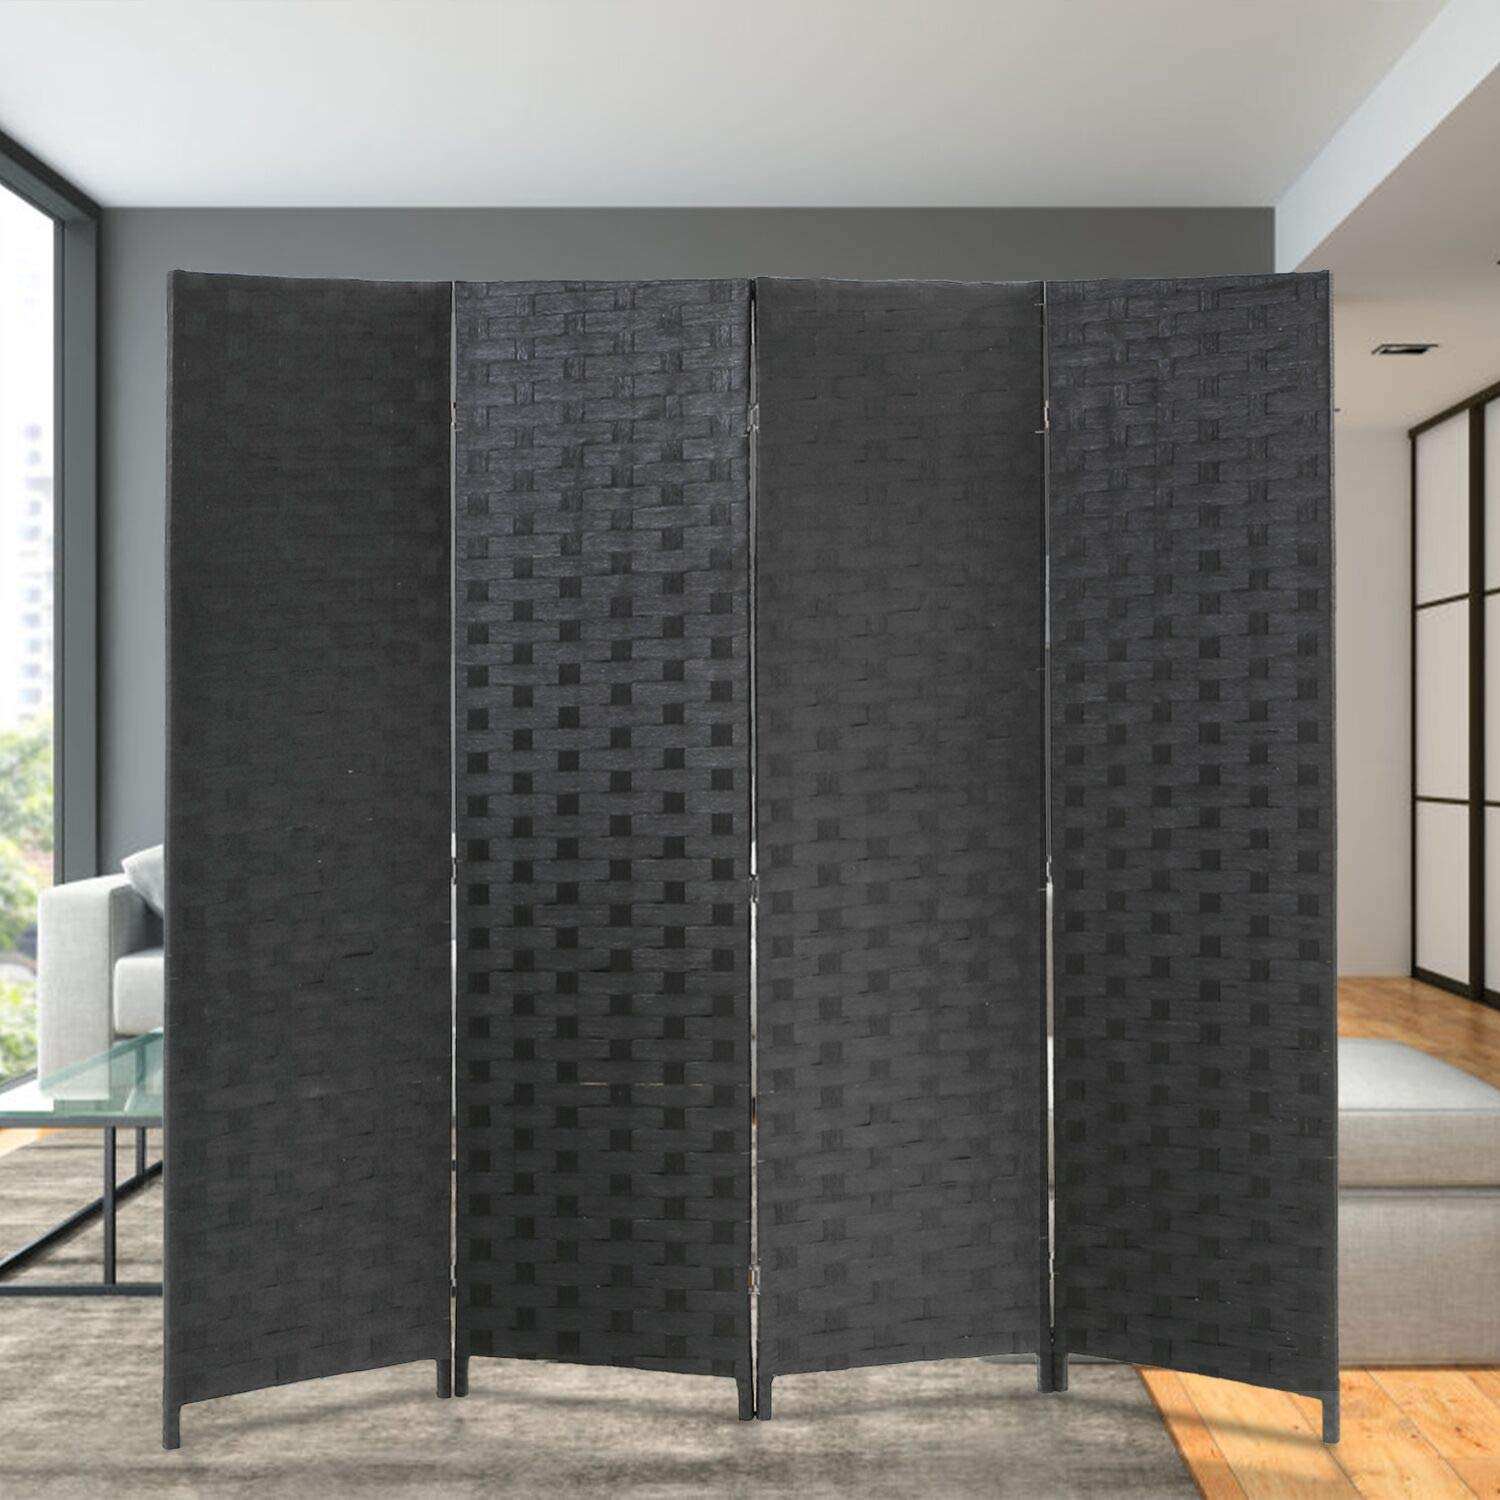 Room Divider Wood Screen 4 Panel Wood Mesh Woven Design Room Screen Divider Folding Portable Partition Screen Screen Wood For Home Office by FDW